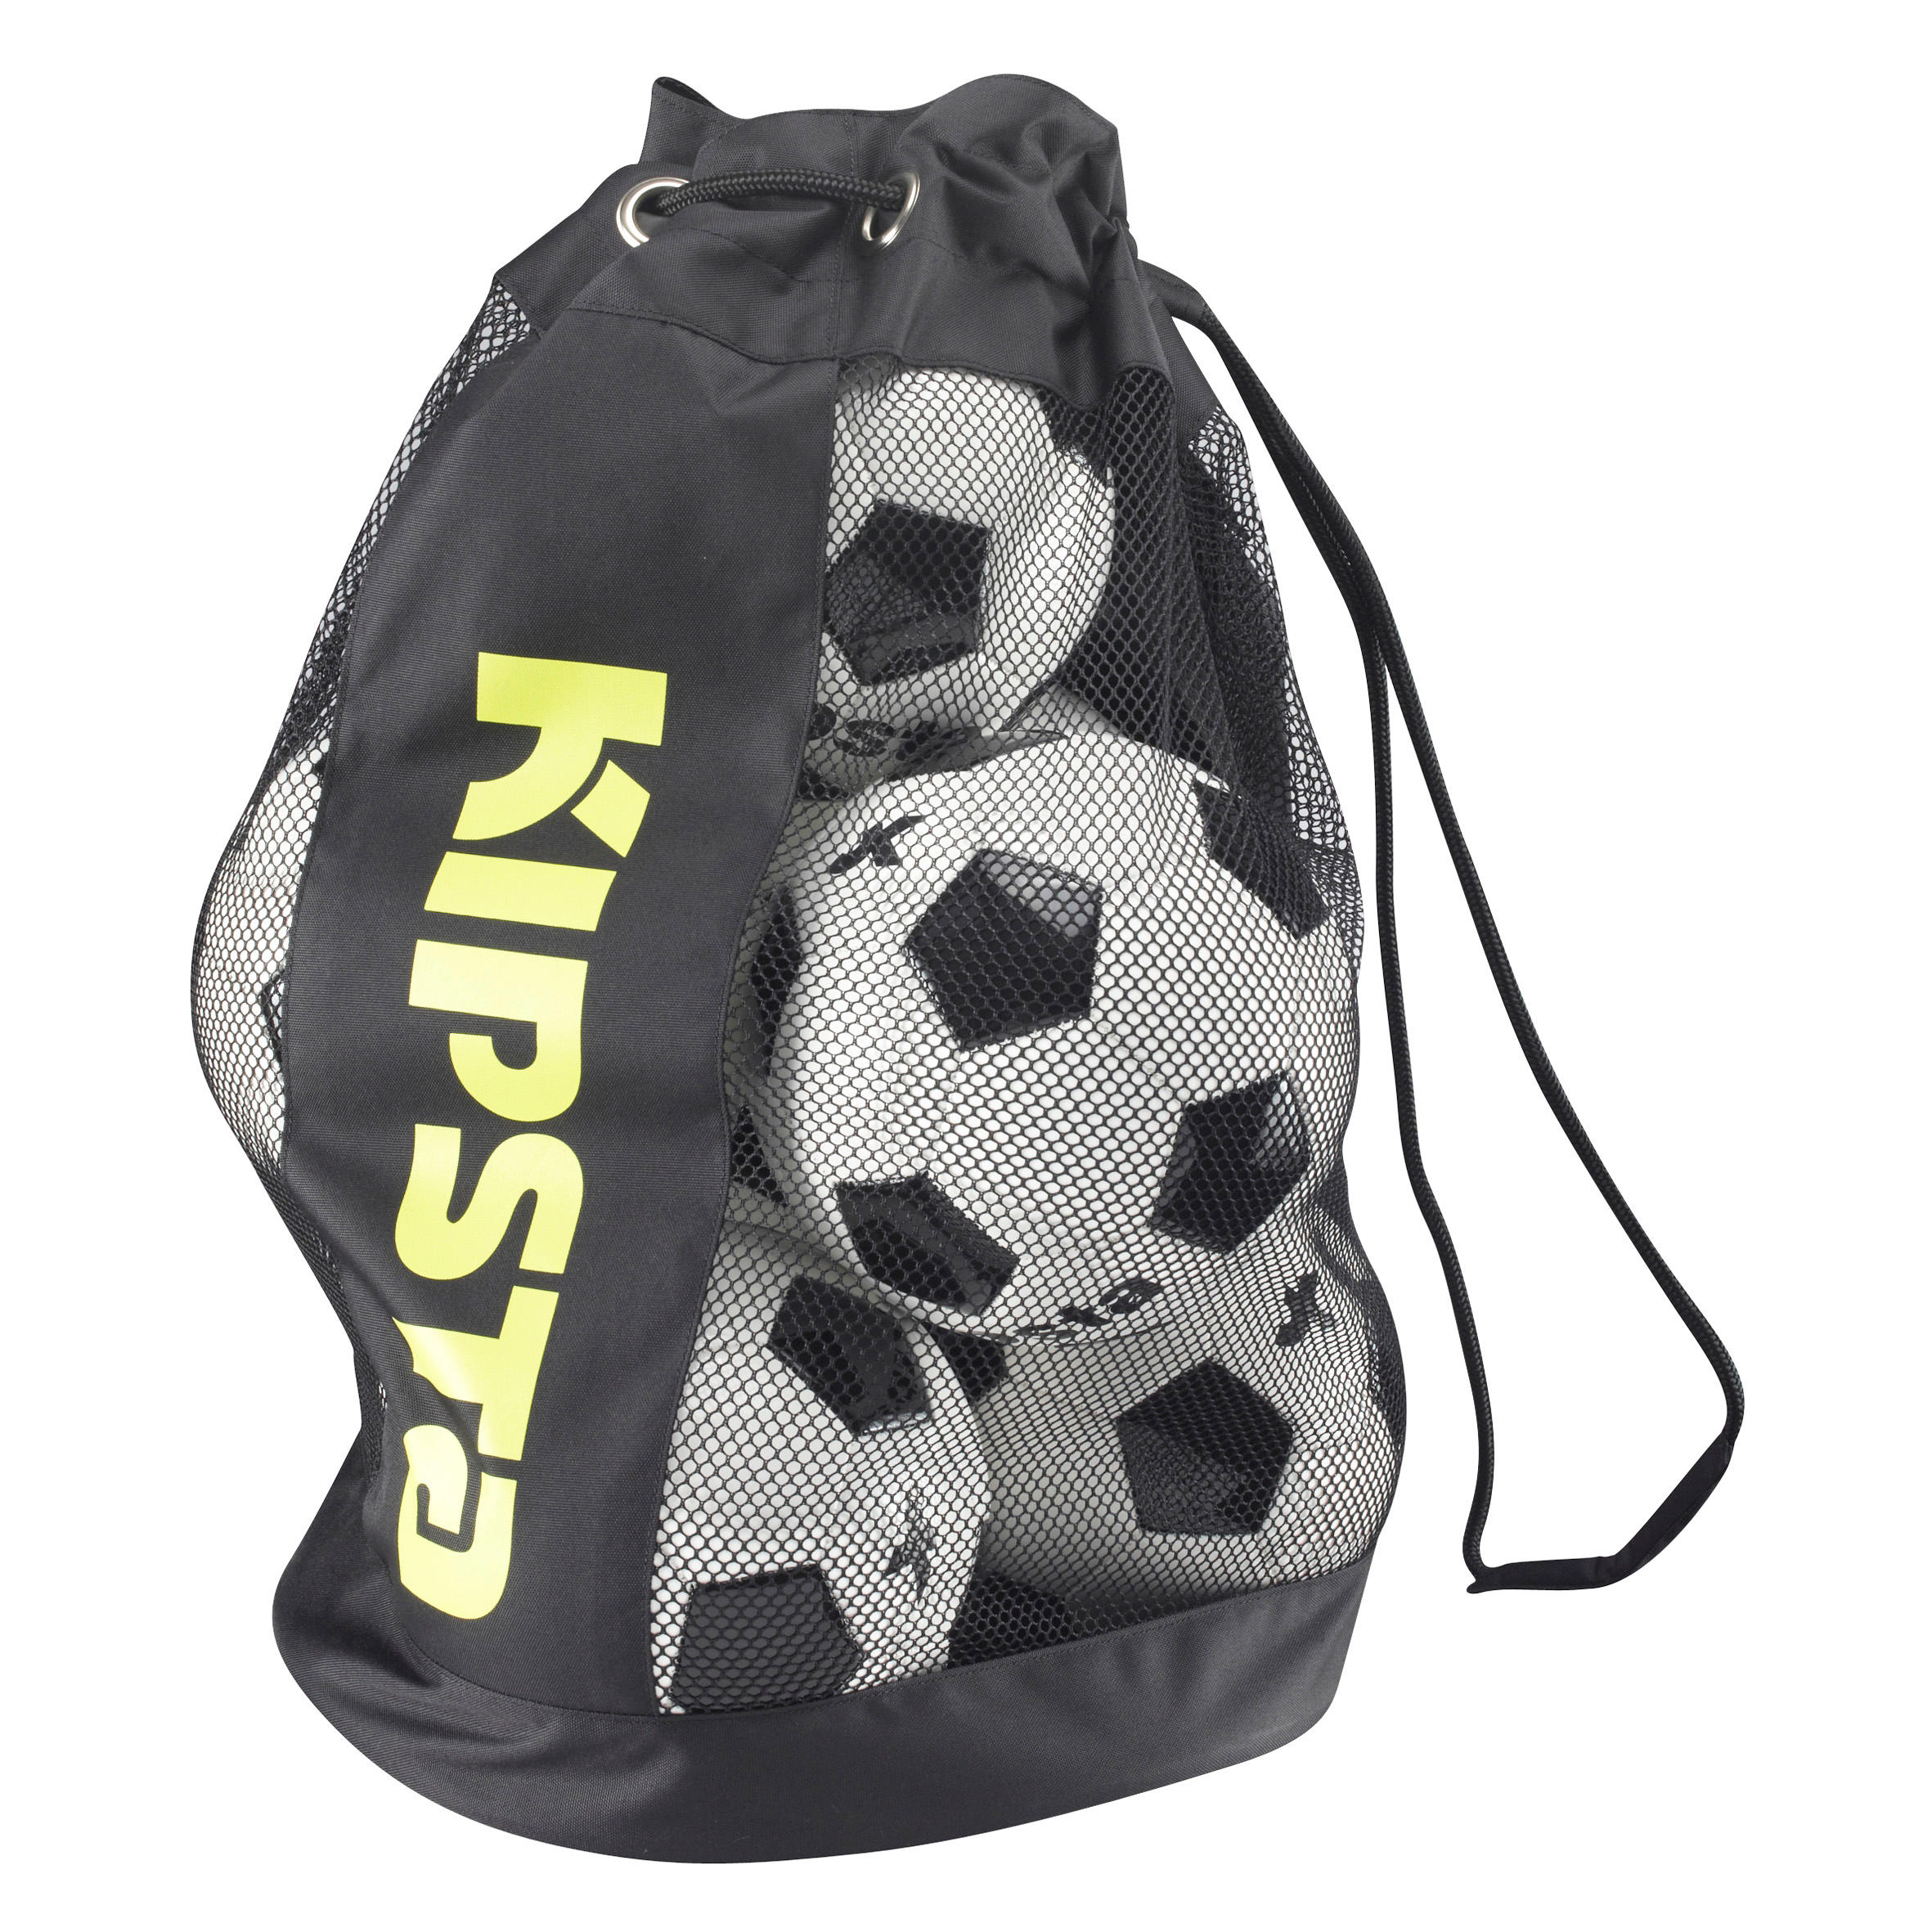 Soccer 8-Ball Bag - Black Yellow